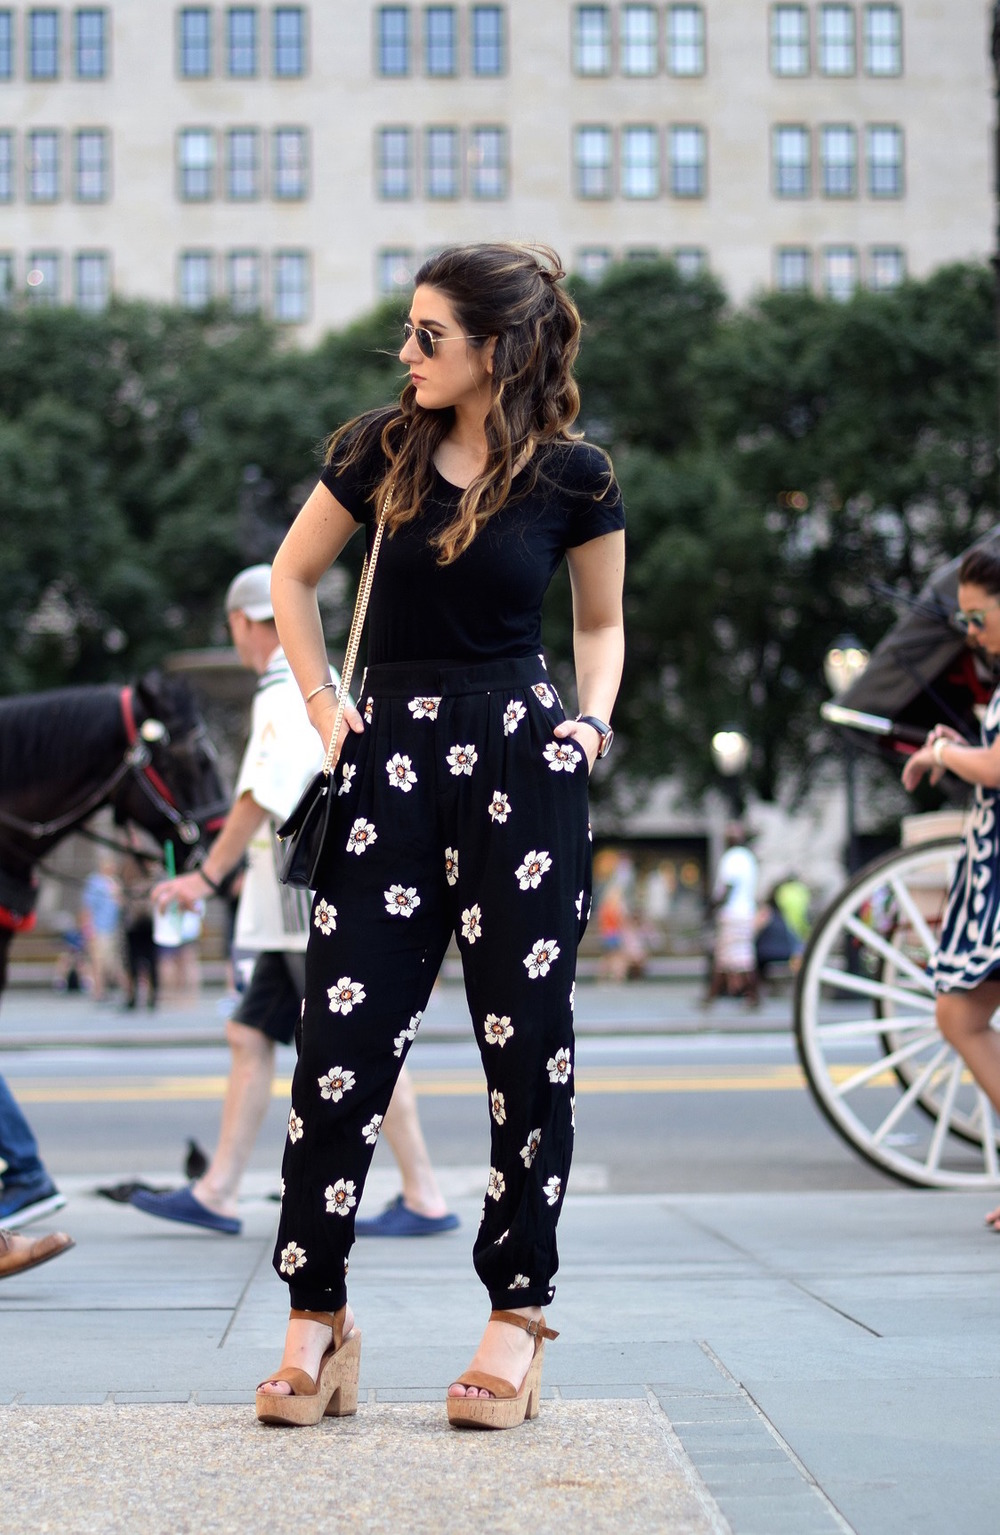 The Perfect Tee Onno T-Shirts Louboutins & Love Fashion Blog Esther Santer NYC Street Style Blogger Outfit OOTD Black Daisy Pants Zara Monochrome Basics Cork Wedges Dolce Vita Hair Inspo Watch Floral Purse Girls Women Shoes Ivanka Trump Spring Summer.jpg